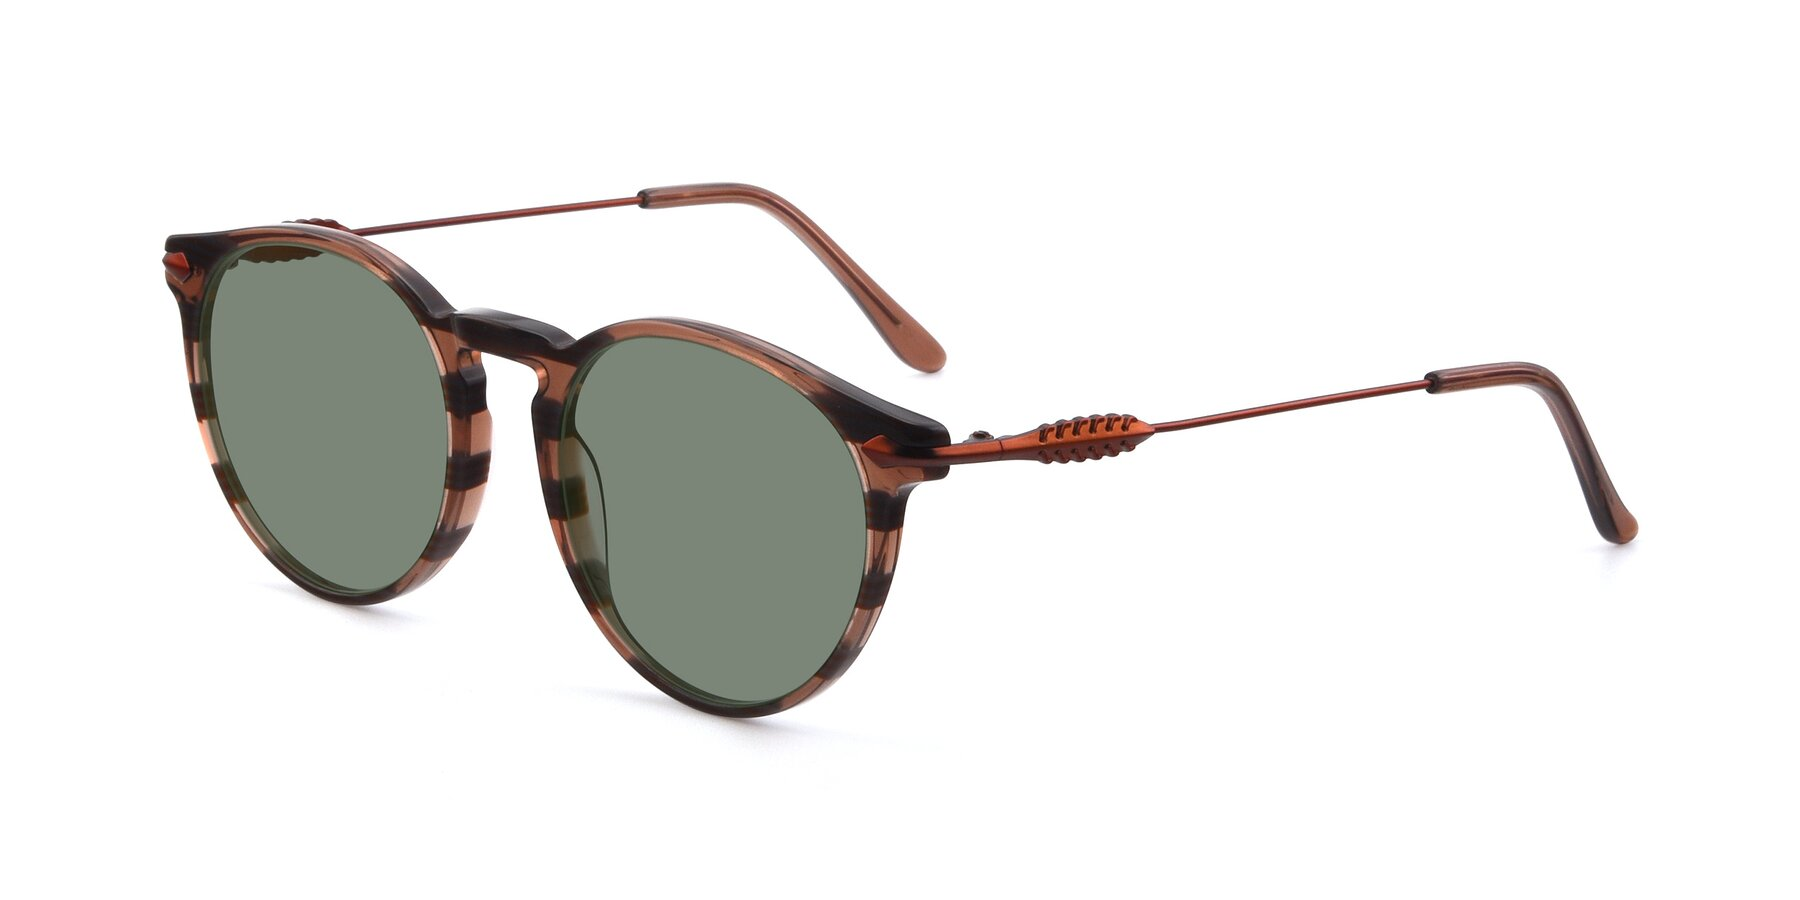 Angle of 17660 in Stripe Brown with Medium Green Tinted Lenses